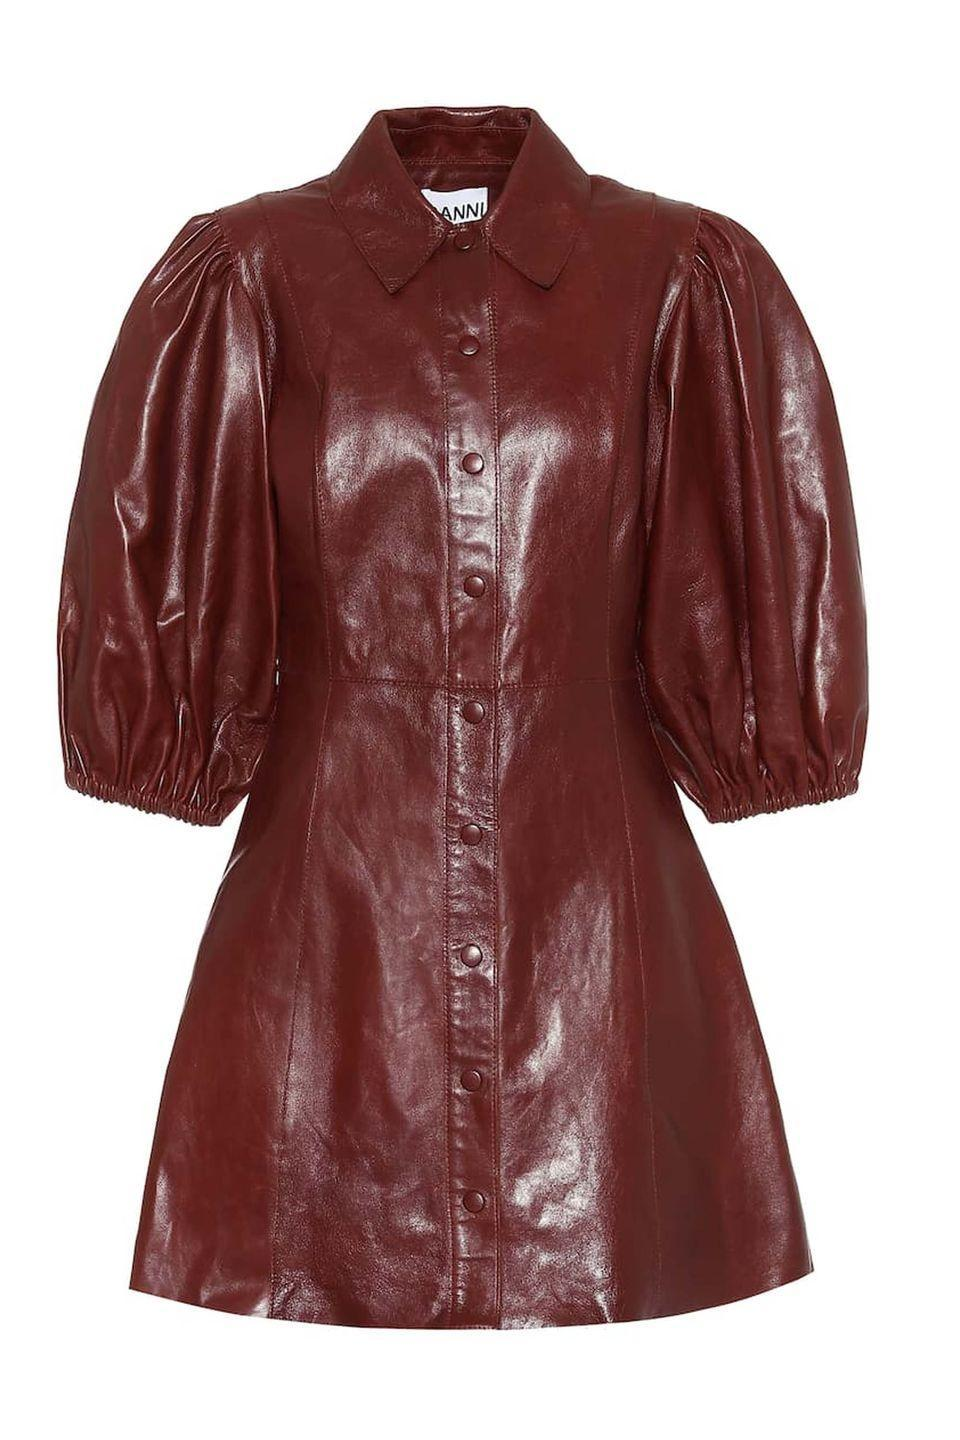 """<p><a class=""""link rapid-noclick-resp"""" href=""""https://go.redirectingat.com?id=127X1599956&url=https%3A%2F%2Fwww.mytheresa.com%2Fen-gb%2Fganni-leather-minidress-1479789.html&sref=https%3A%2F%2Fwww.harpersbazaar.com%2Fuk%2Ffashion%2Ffashion-news%2Fg34504089%2Fhottest-products-2020%2F"""" rel=""""nofollow noopener"""" target=""""_blank"""" data-ylk=""""slk:SHOP NOW"""">SHOP NOW</a></p><p>As one of the most popular contemporary labels in the world, it is no surprise to find Ganni on this list. The Scandi brand's balloon-sleeved leather dress was a particular hit this season, taking the sixth spot.</p><p>Dress, £367, <a href=""""https://go.redirectingat.com?id=127X1599956&url=https%3A%2F%2Fwww.mytheresa.com%2Fen-gb%2Fganni-leather-minidress-1479789.html&sref=https%3A%2F%2Fwww.harpersbazaar.com%2Fuk%2Ffashion%2Ffashion-news%2Fg34504089%2Fhottest-products-2020%2F"""" rel=""""nofollow noopener"""" target=""""_blank"""" data-ylk=""""slk:Ganni"""" class=""""link rapid-noclick-resp"""">Ganni</a></p>"""